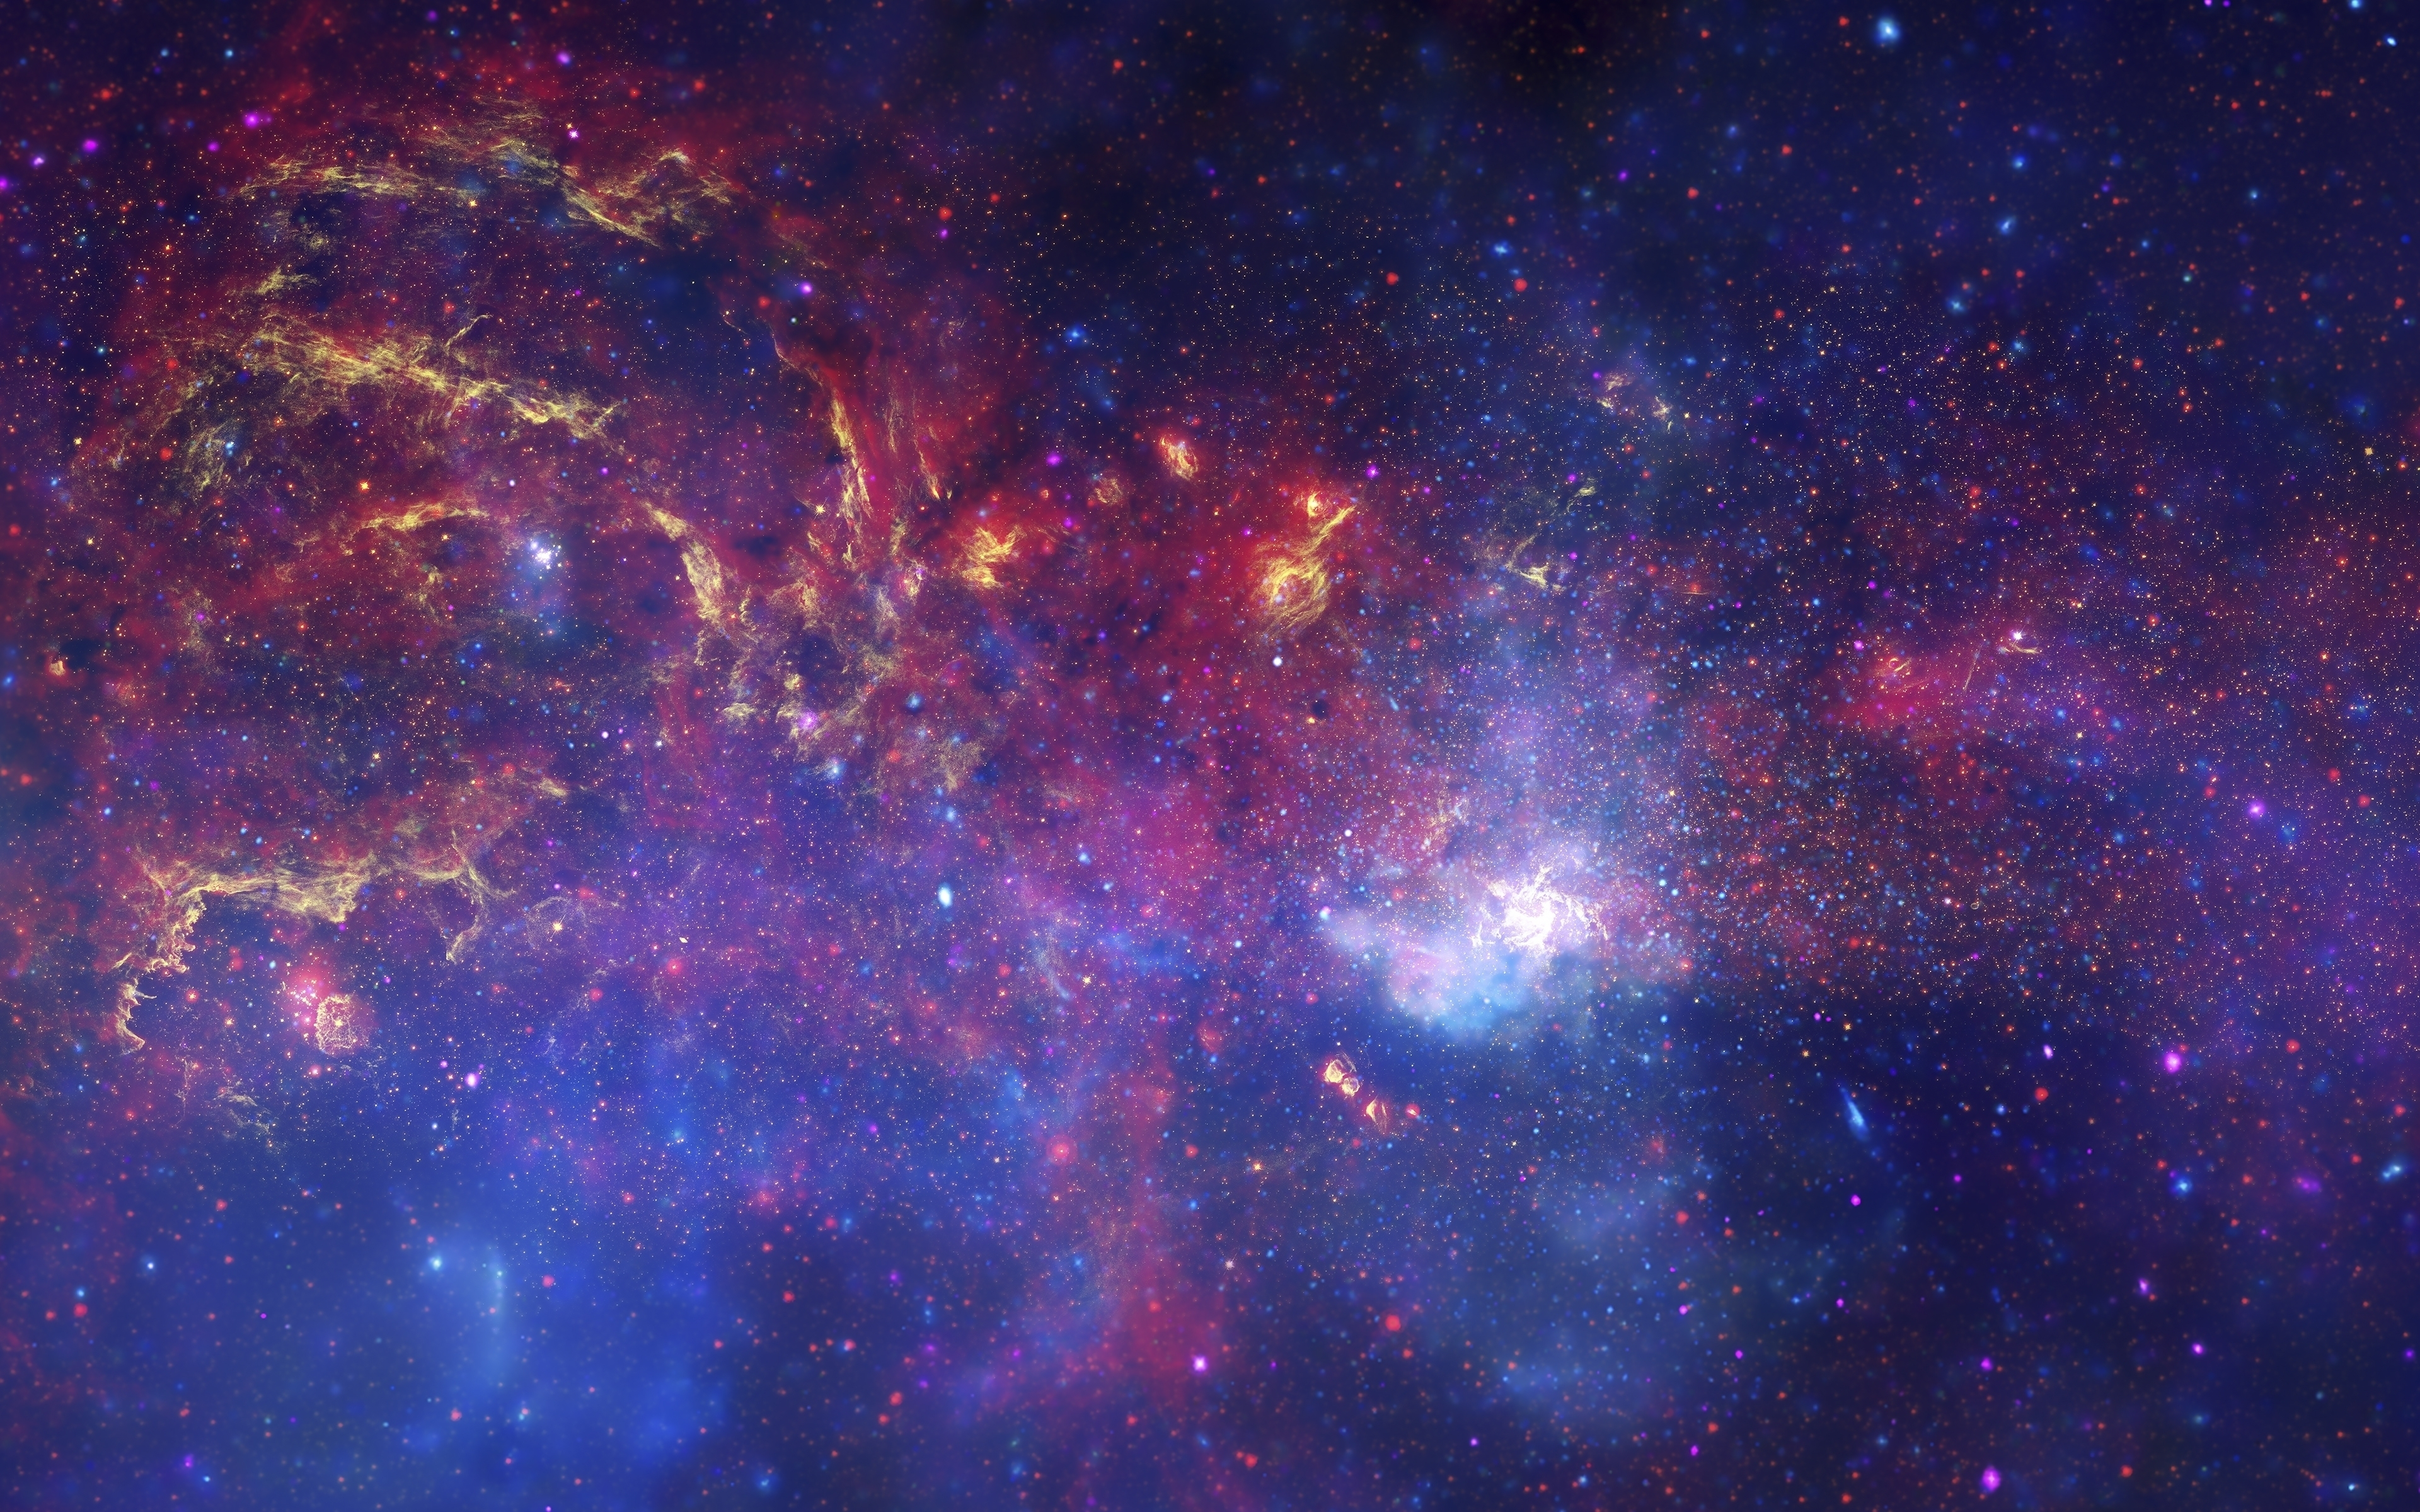 Vibrant Galactic Stellar Evolution 5K wallpaper